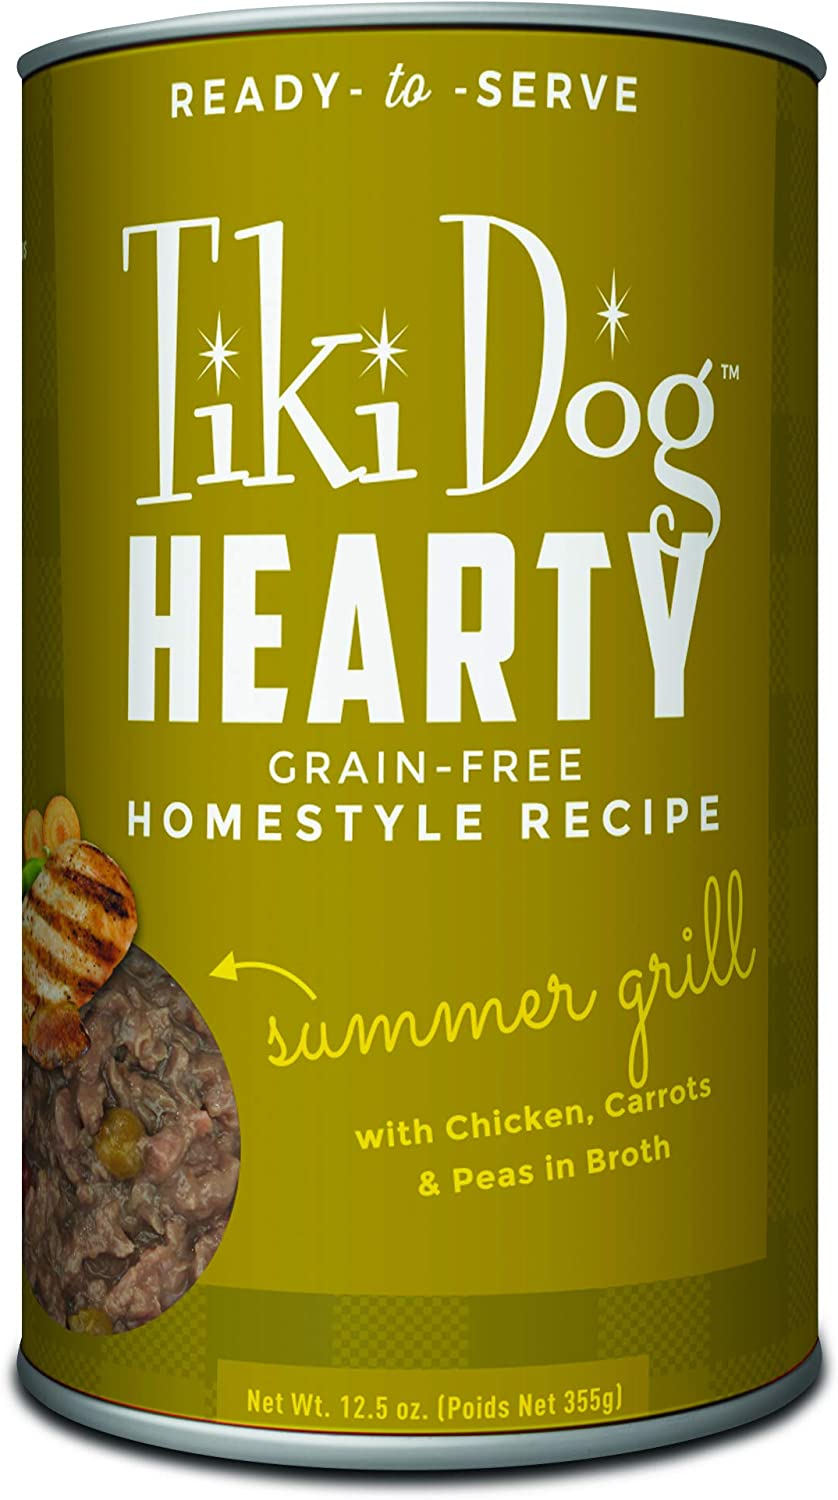 Tiki Dog Hearty Wet Whole Food, Grain Free Homemade Recipe, Ready to Serve, 12.5 oz, 12 cans